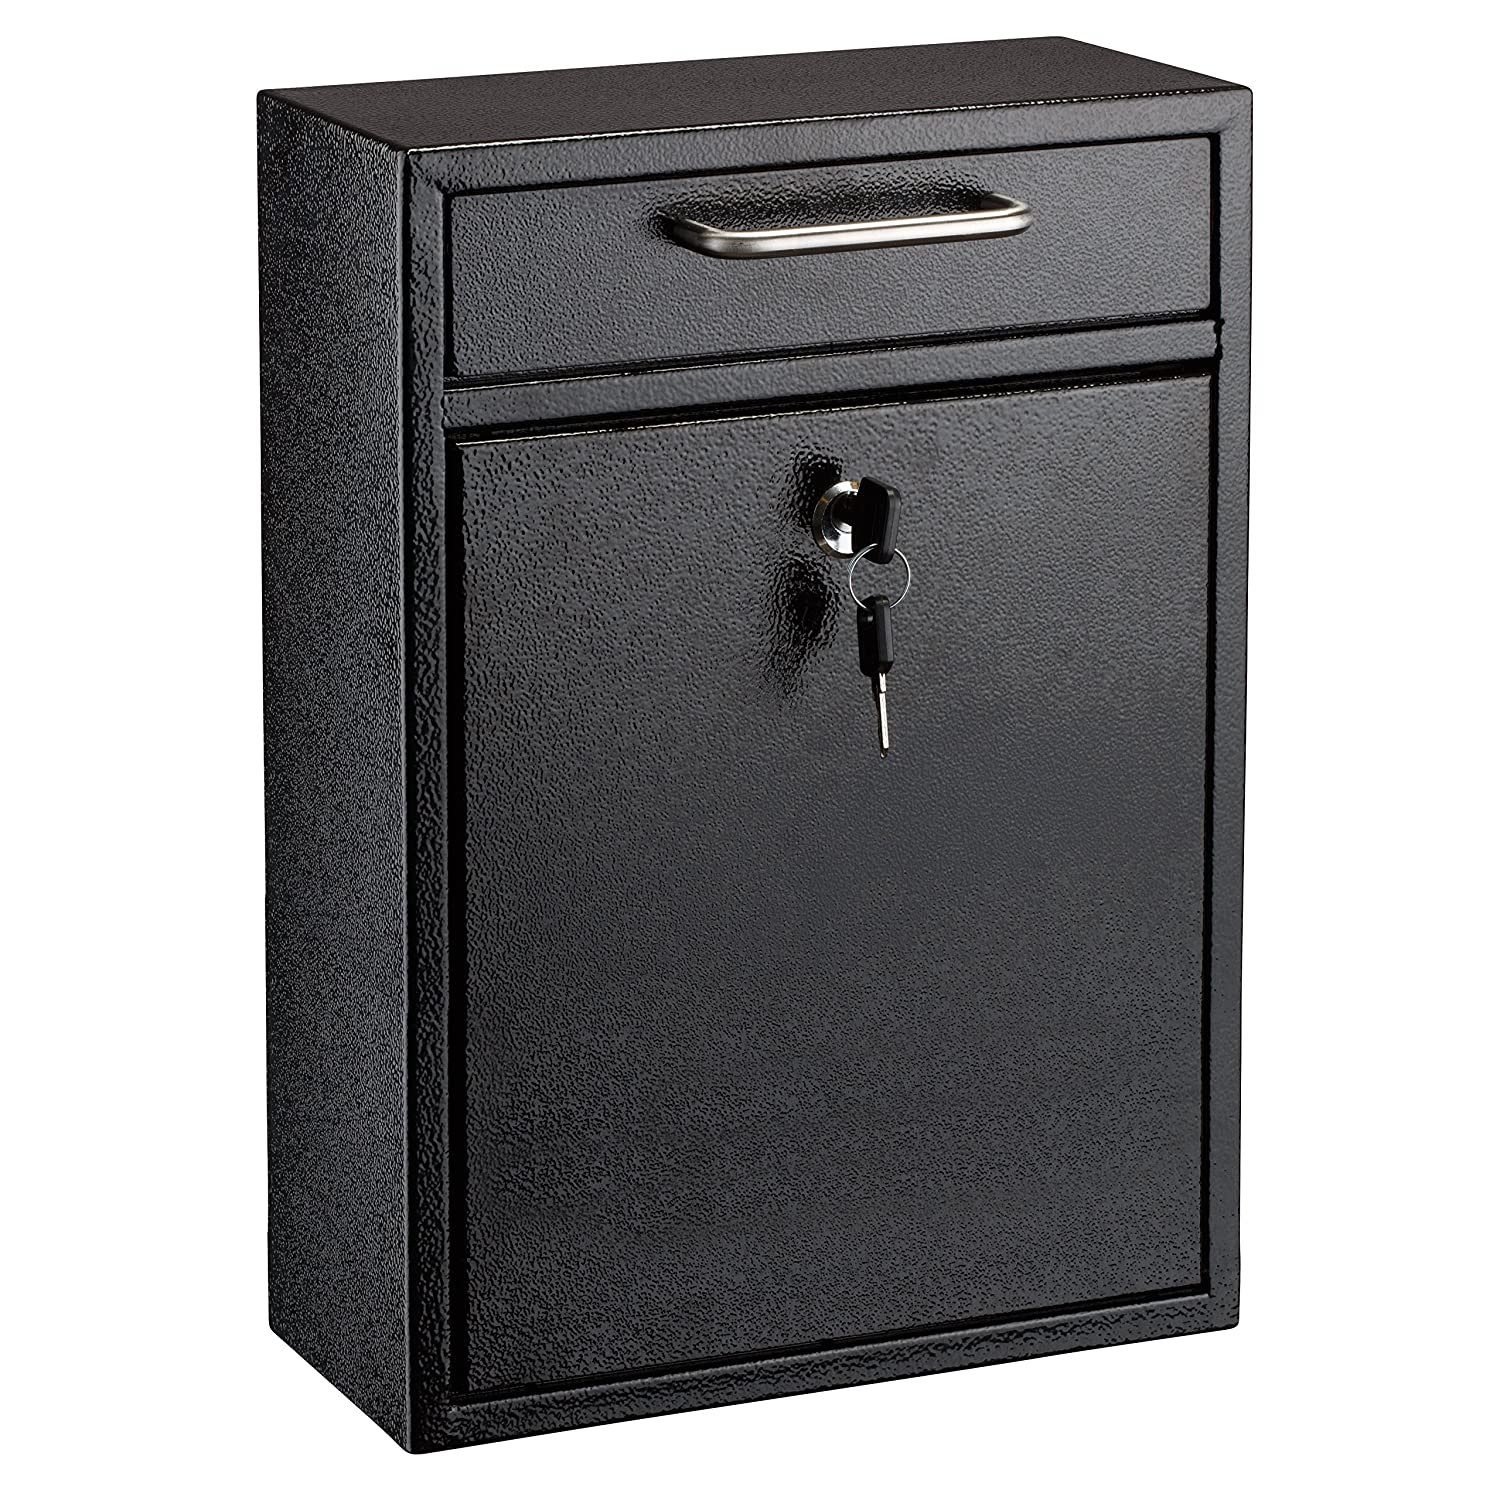 Adiroffice Locking Black Large Drop Box Wall Mounted